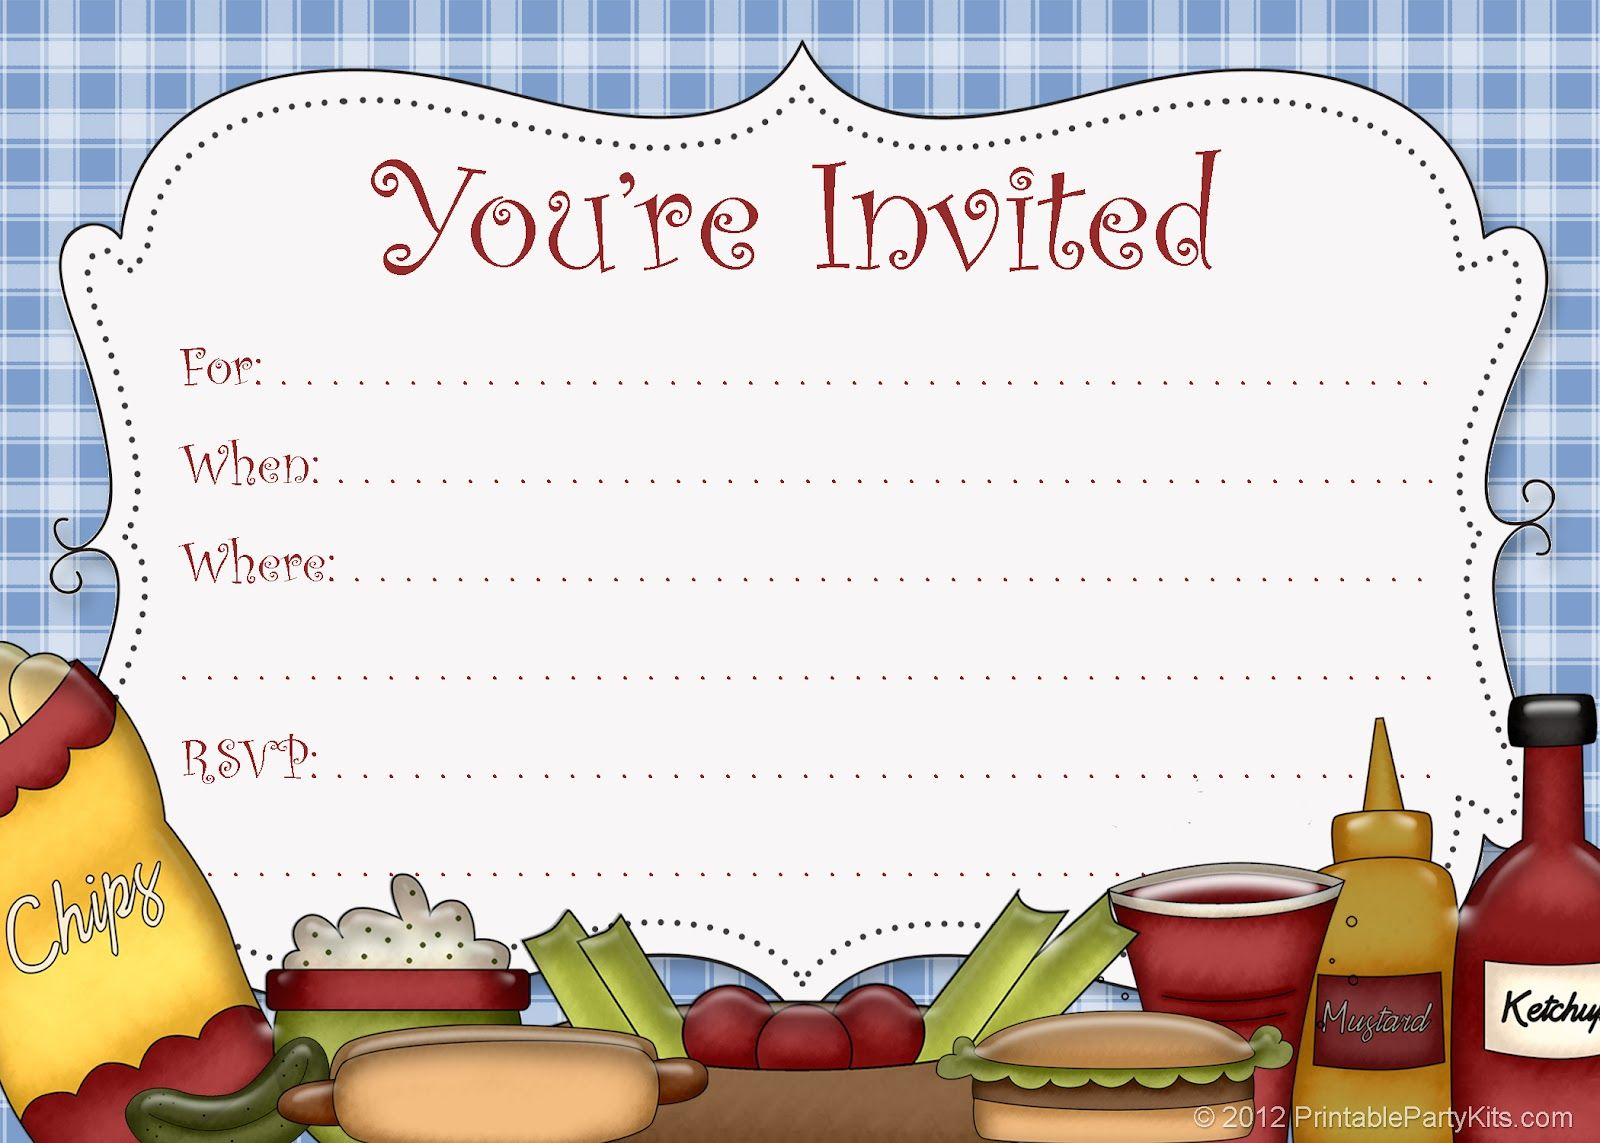 5 best images of free printable cookout invitations party things